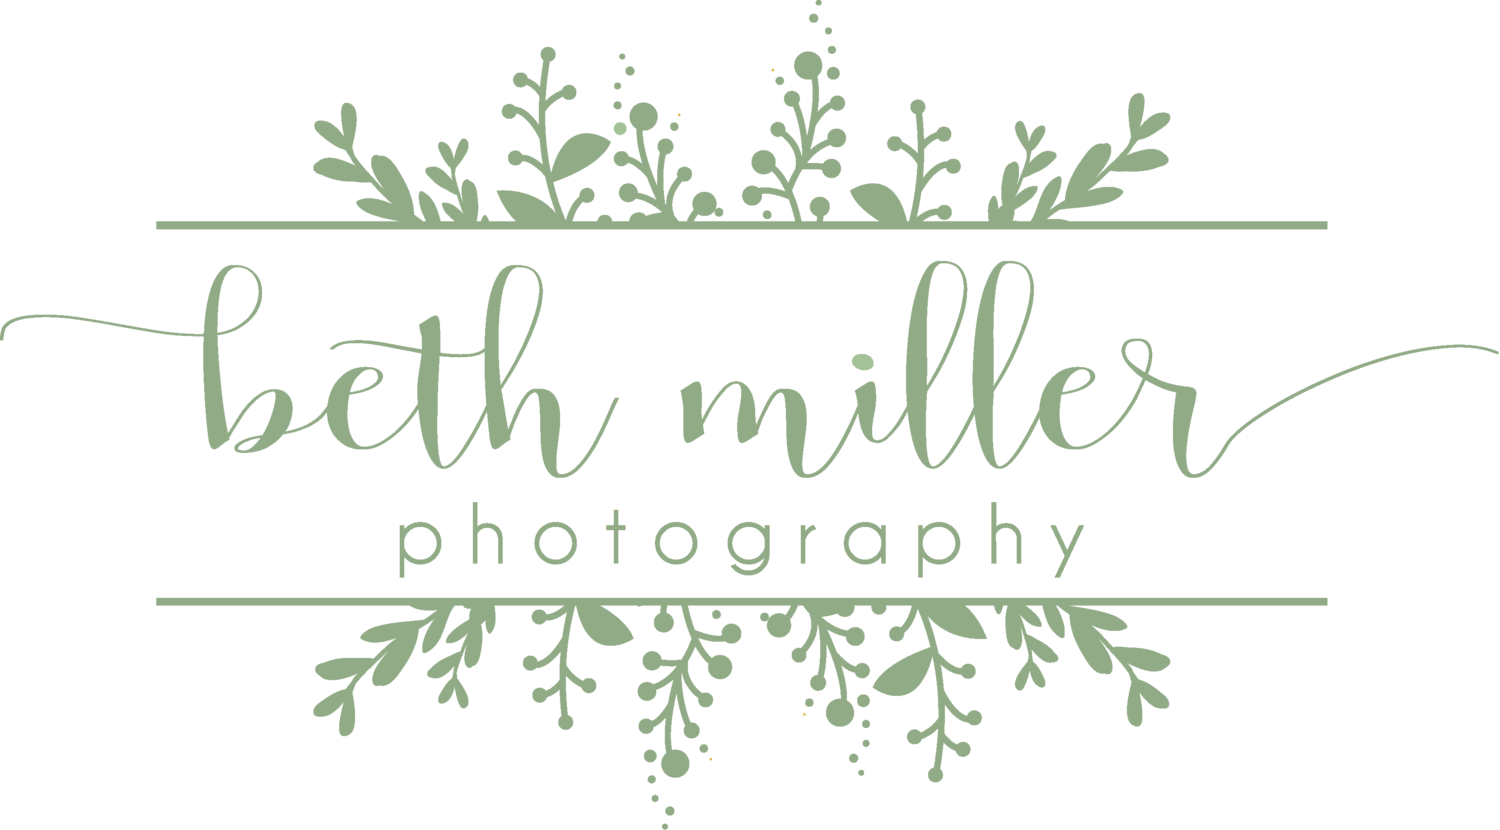 Beth Miller Photography LLC